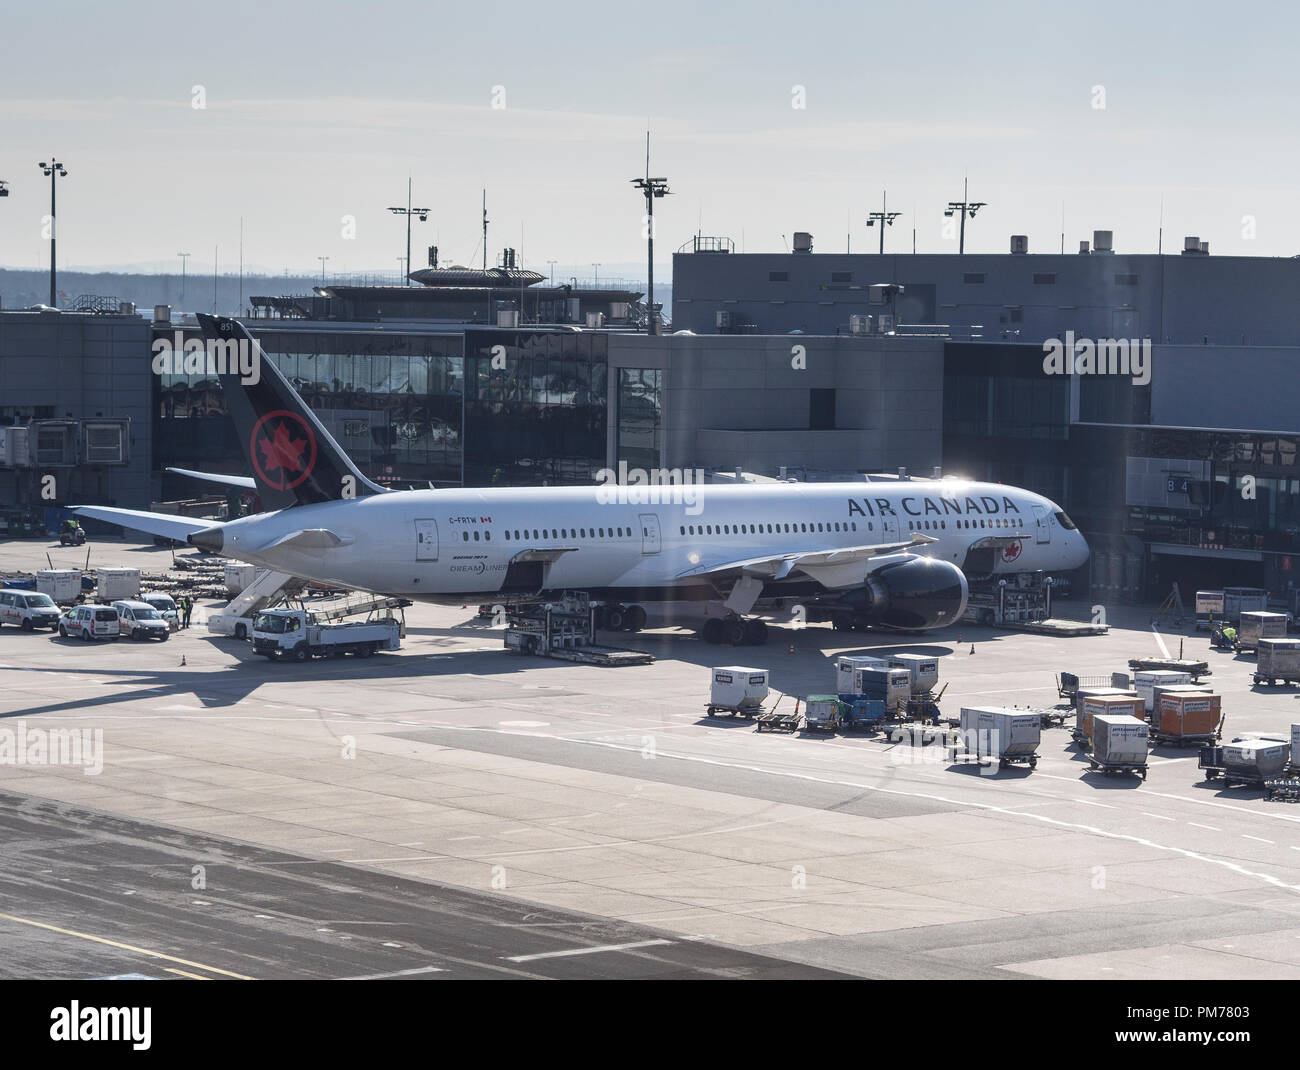 Air Canada aircraft at Frankfurt Airport - Stock Image